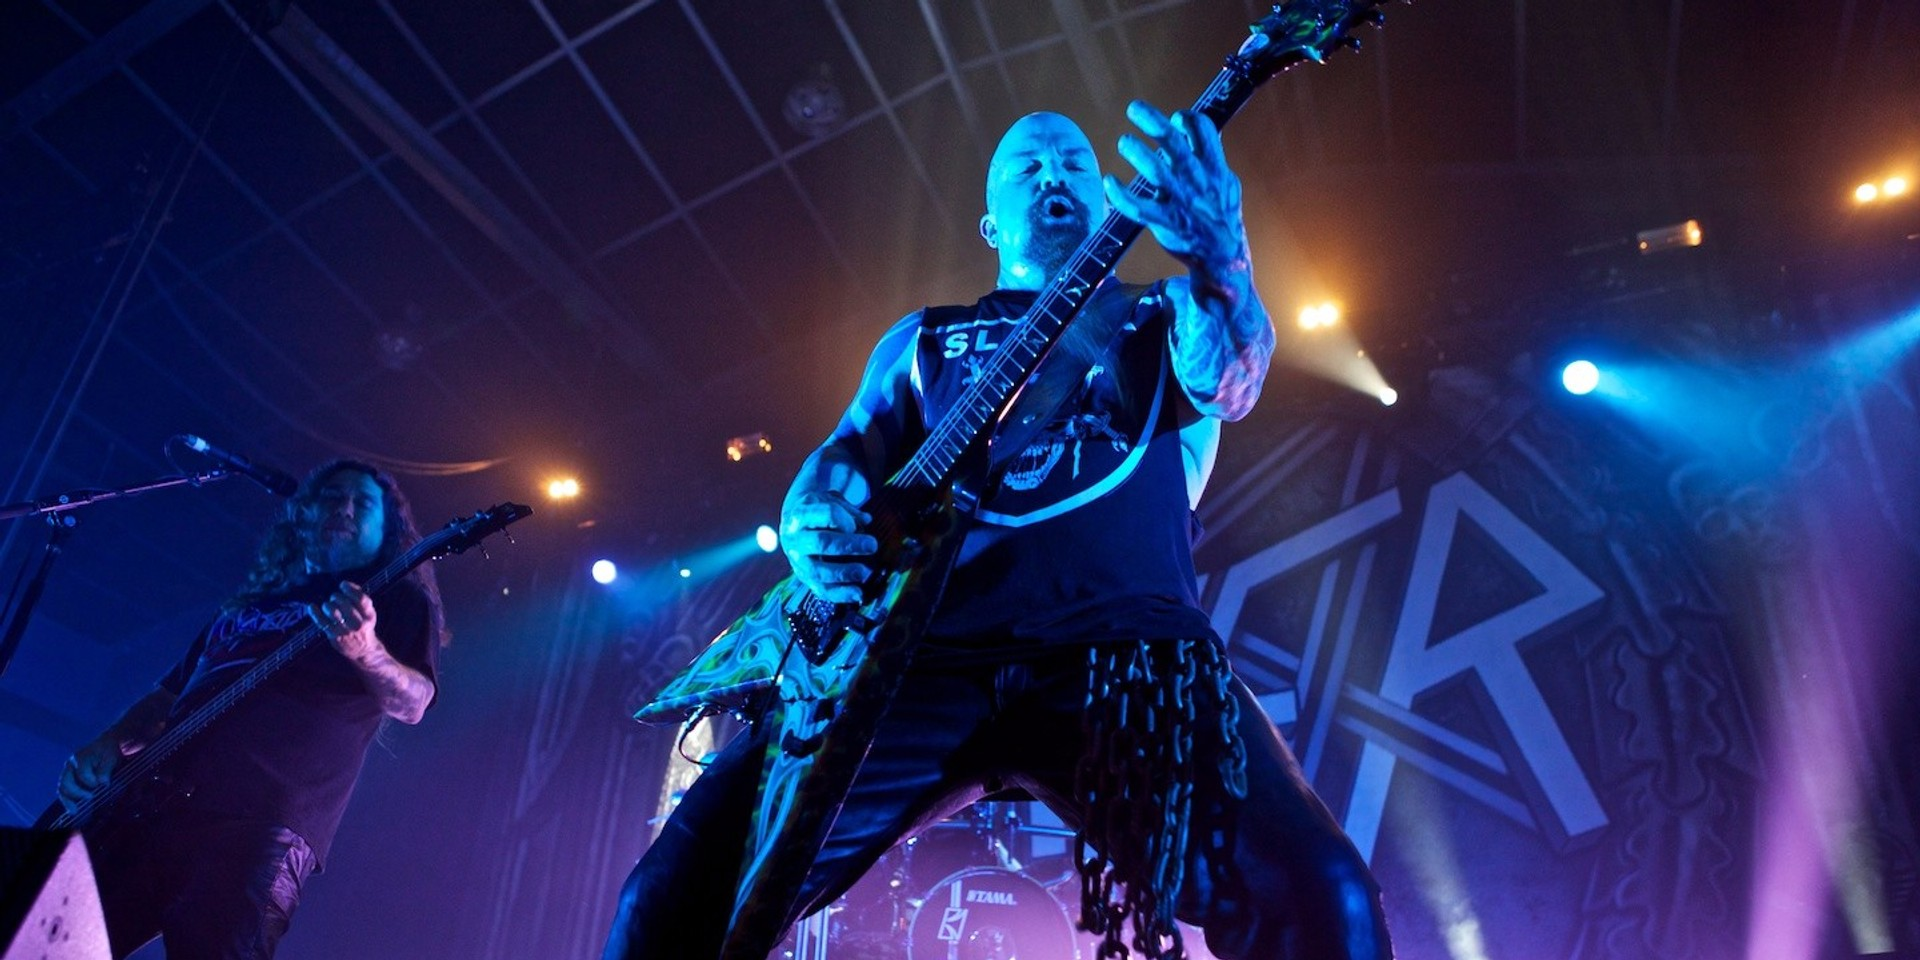 Slayer's show in Manila bans moshing and crowdsurfing